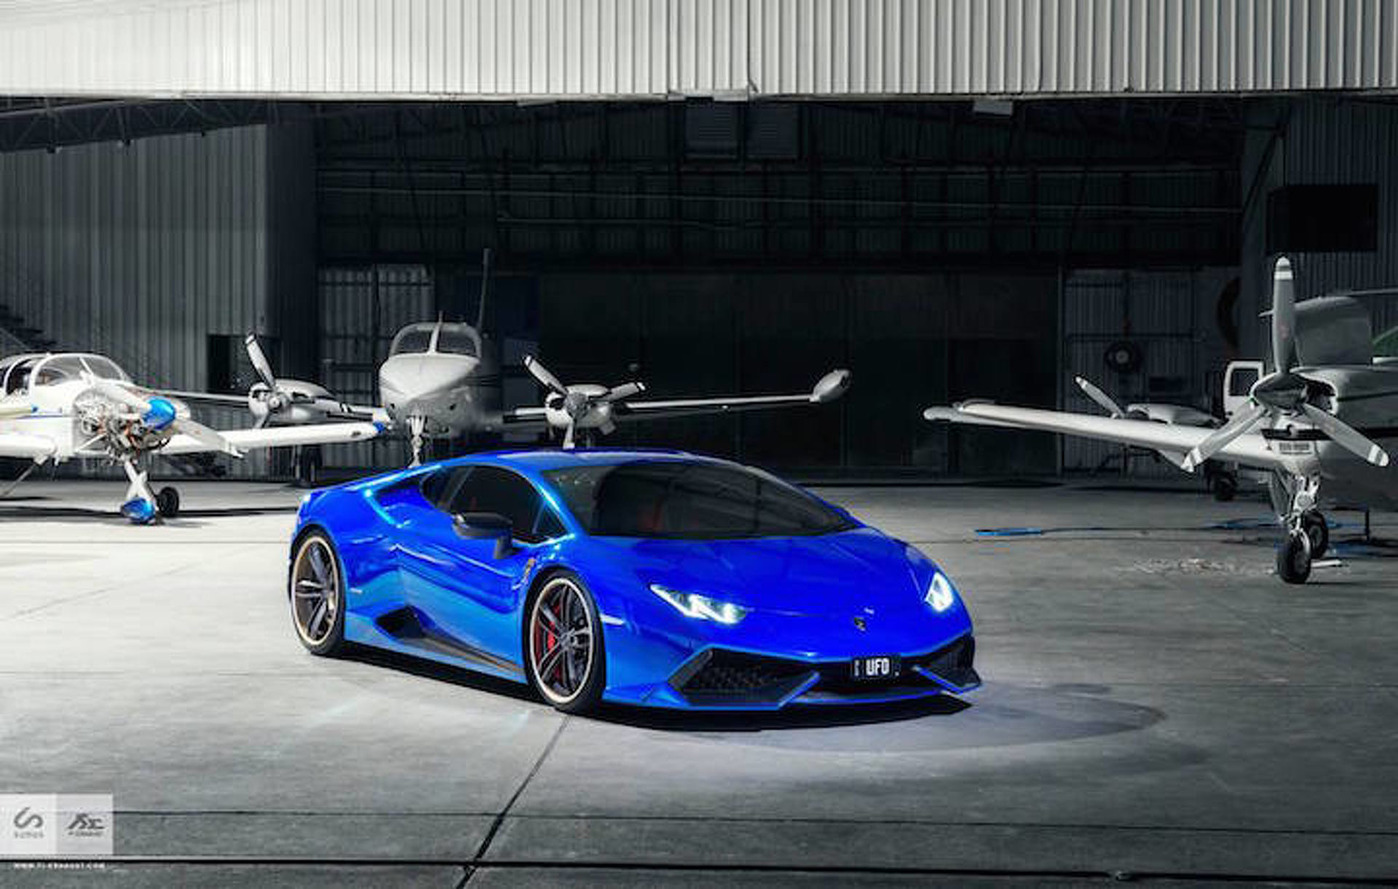 This Lamborghini Huracan In Blue Chrome Looks Crazy Good